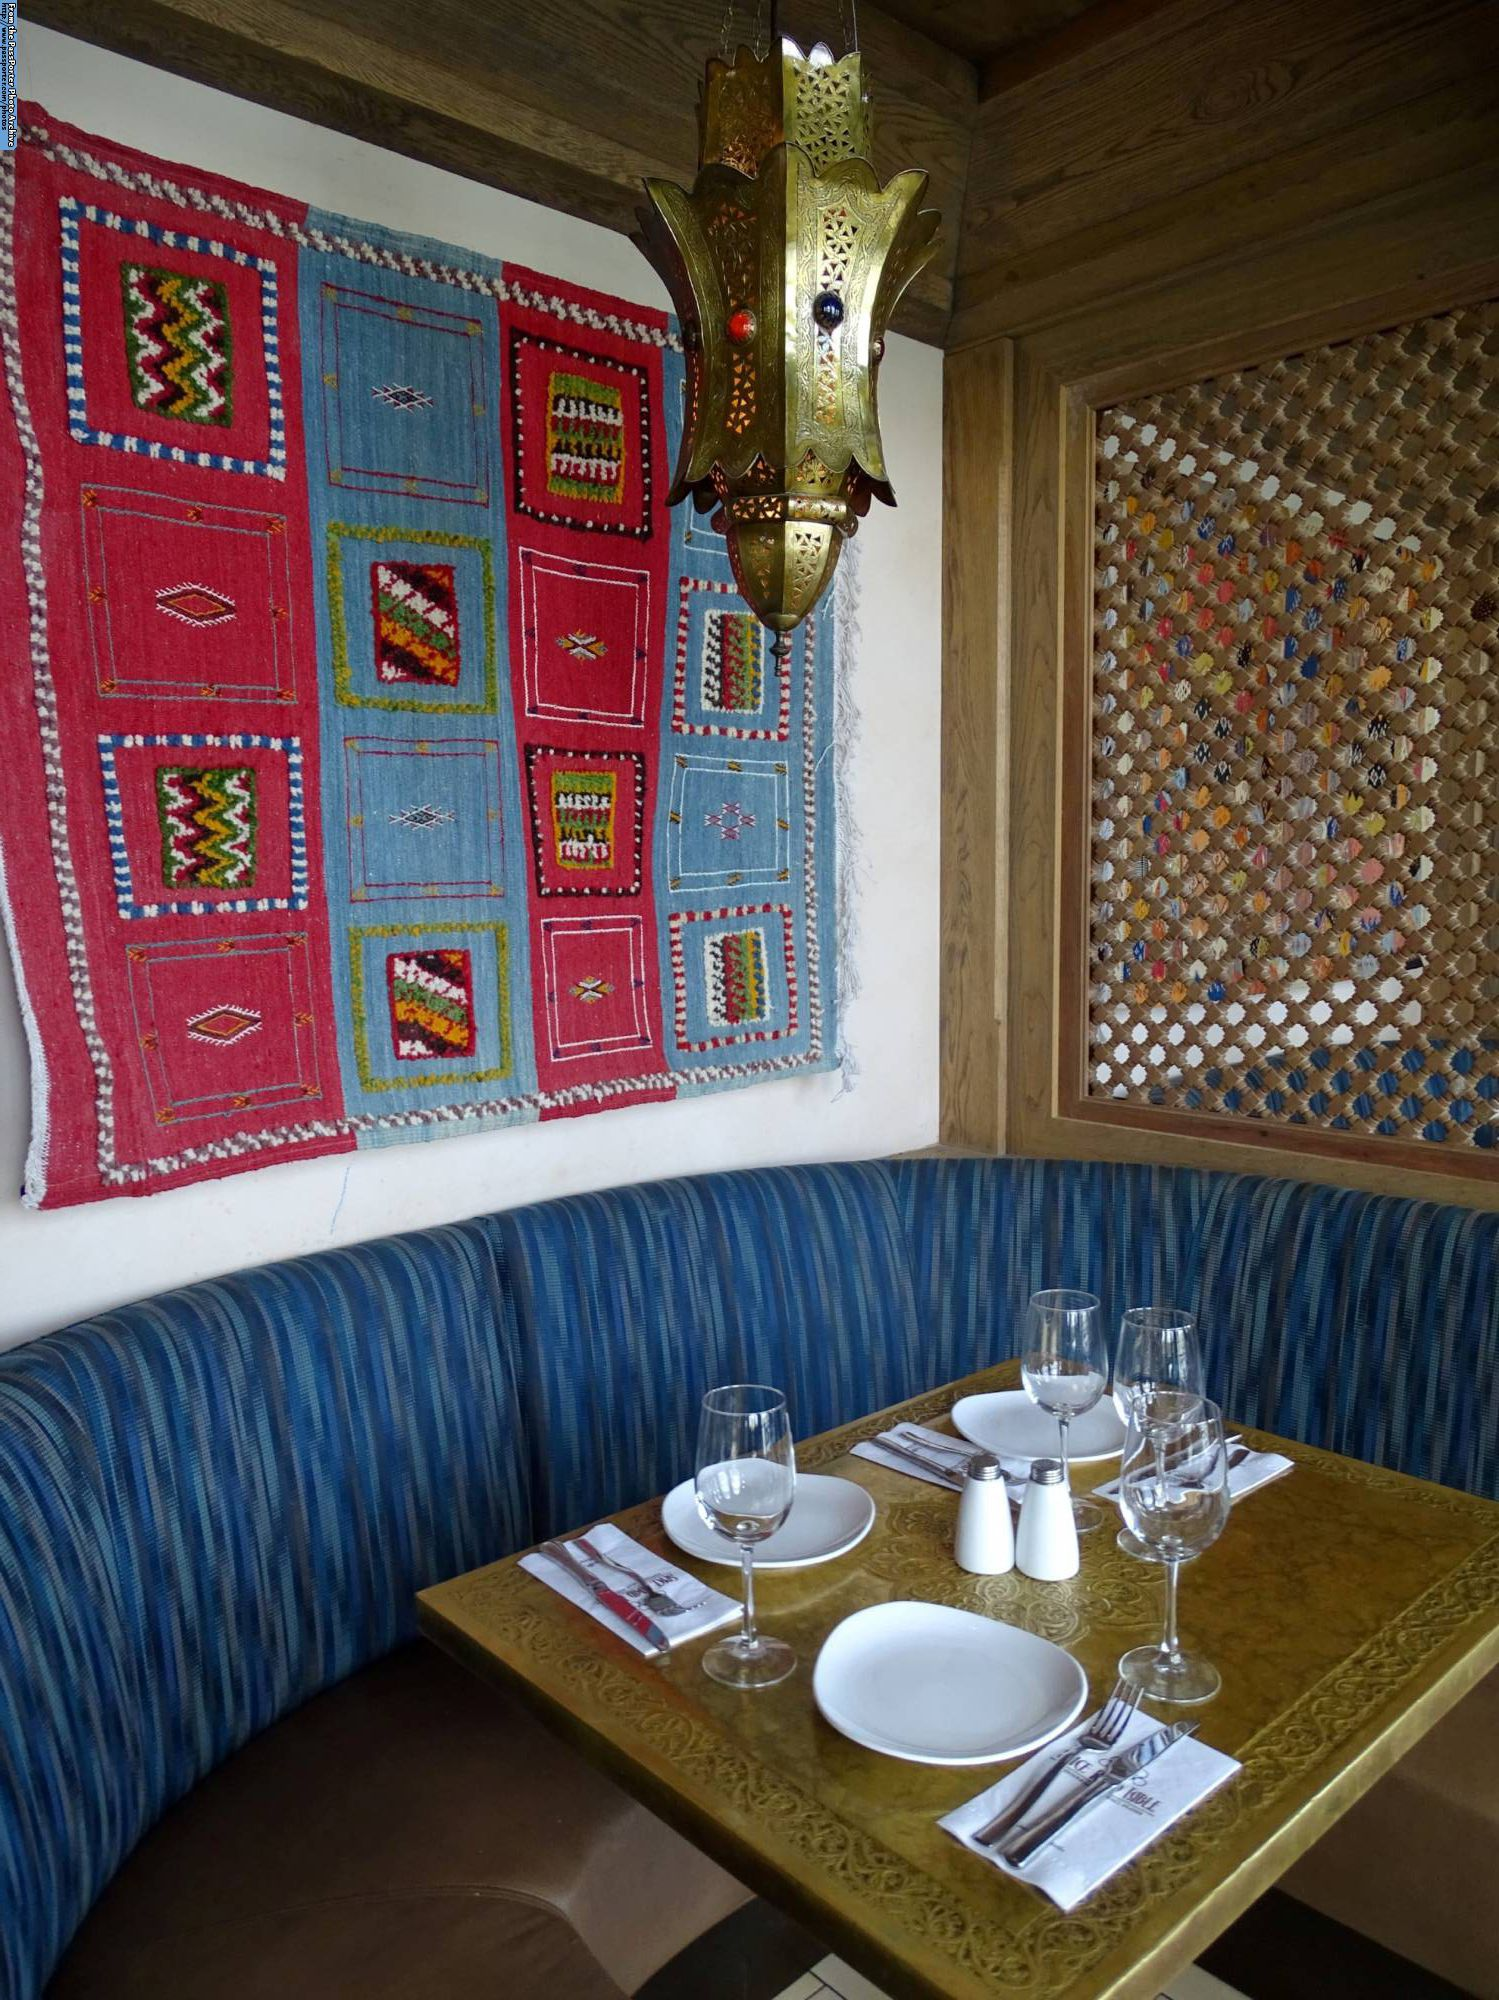 Enjoy the flavors of Morocco at spice Road Table | PassPorter.com